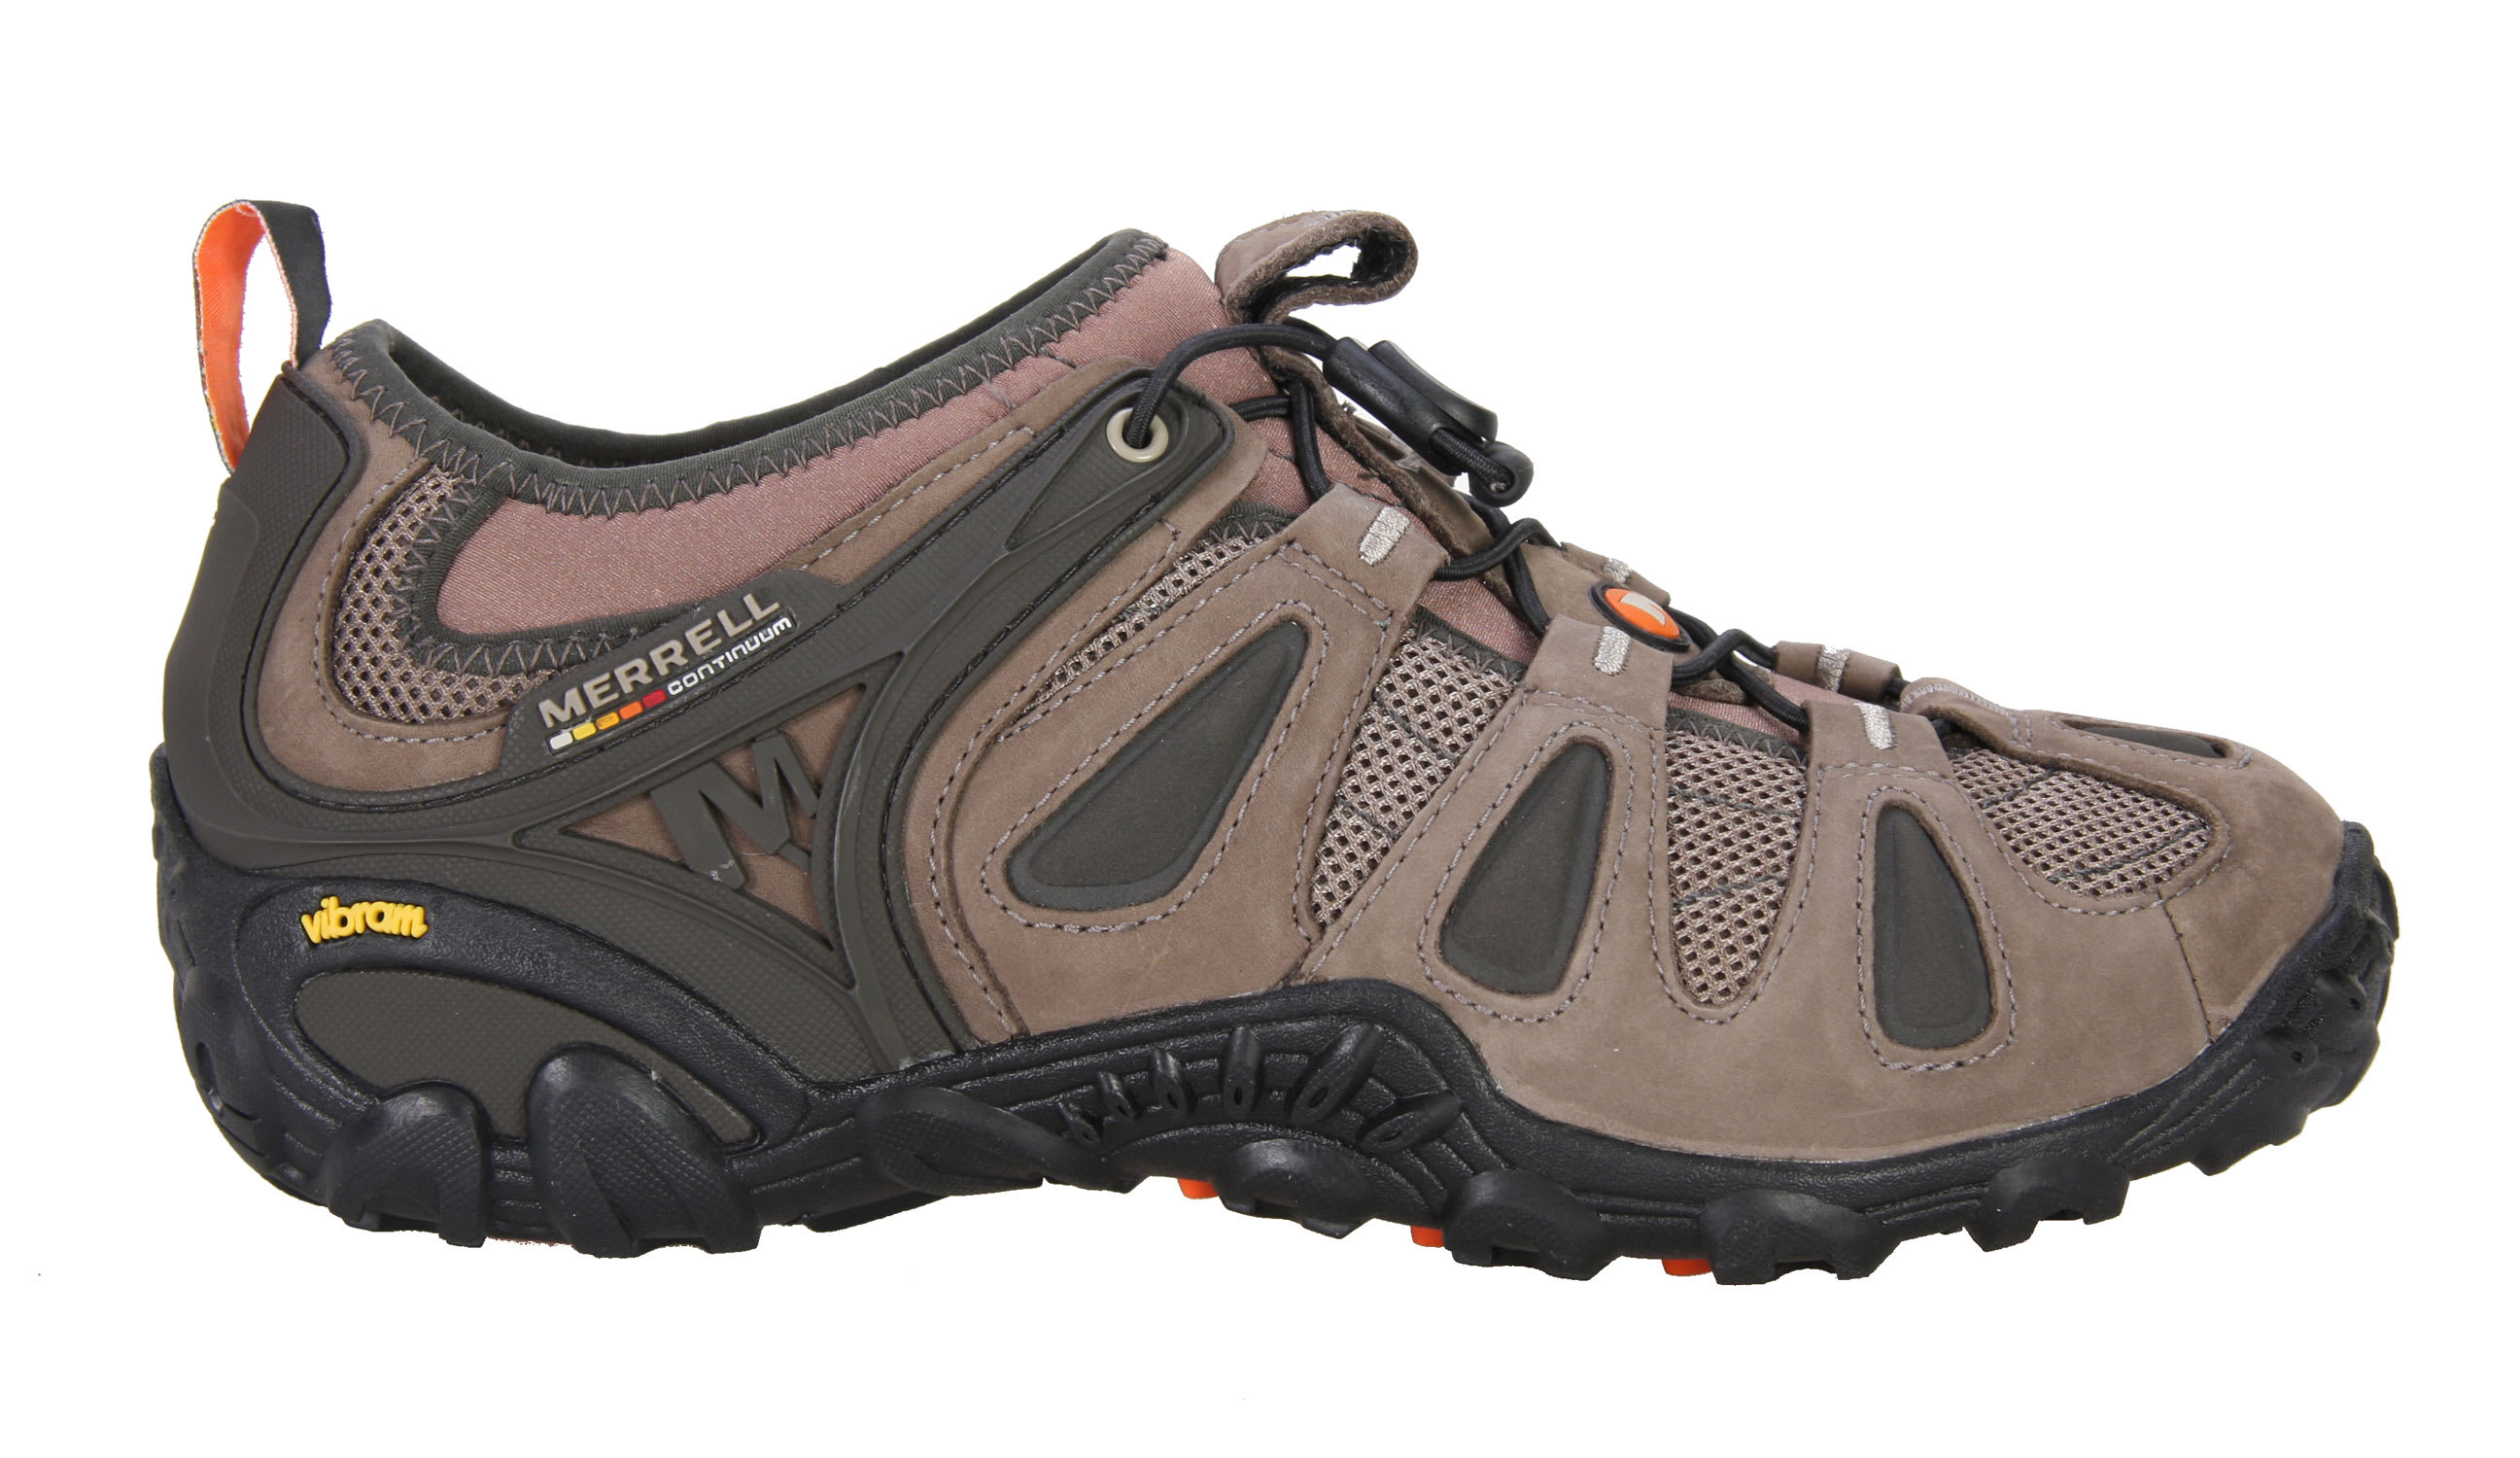 Ventilated Merrell Moab 2 Vent Low hikers offer out-of-the-box comfort, durable leather, supportive footbeds and Vibram traction. Wear them and you'll know why Moab stands for Mother-Of-All-Boots. Available at REI, % Satisfaction Guaranteed.